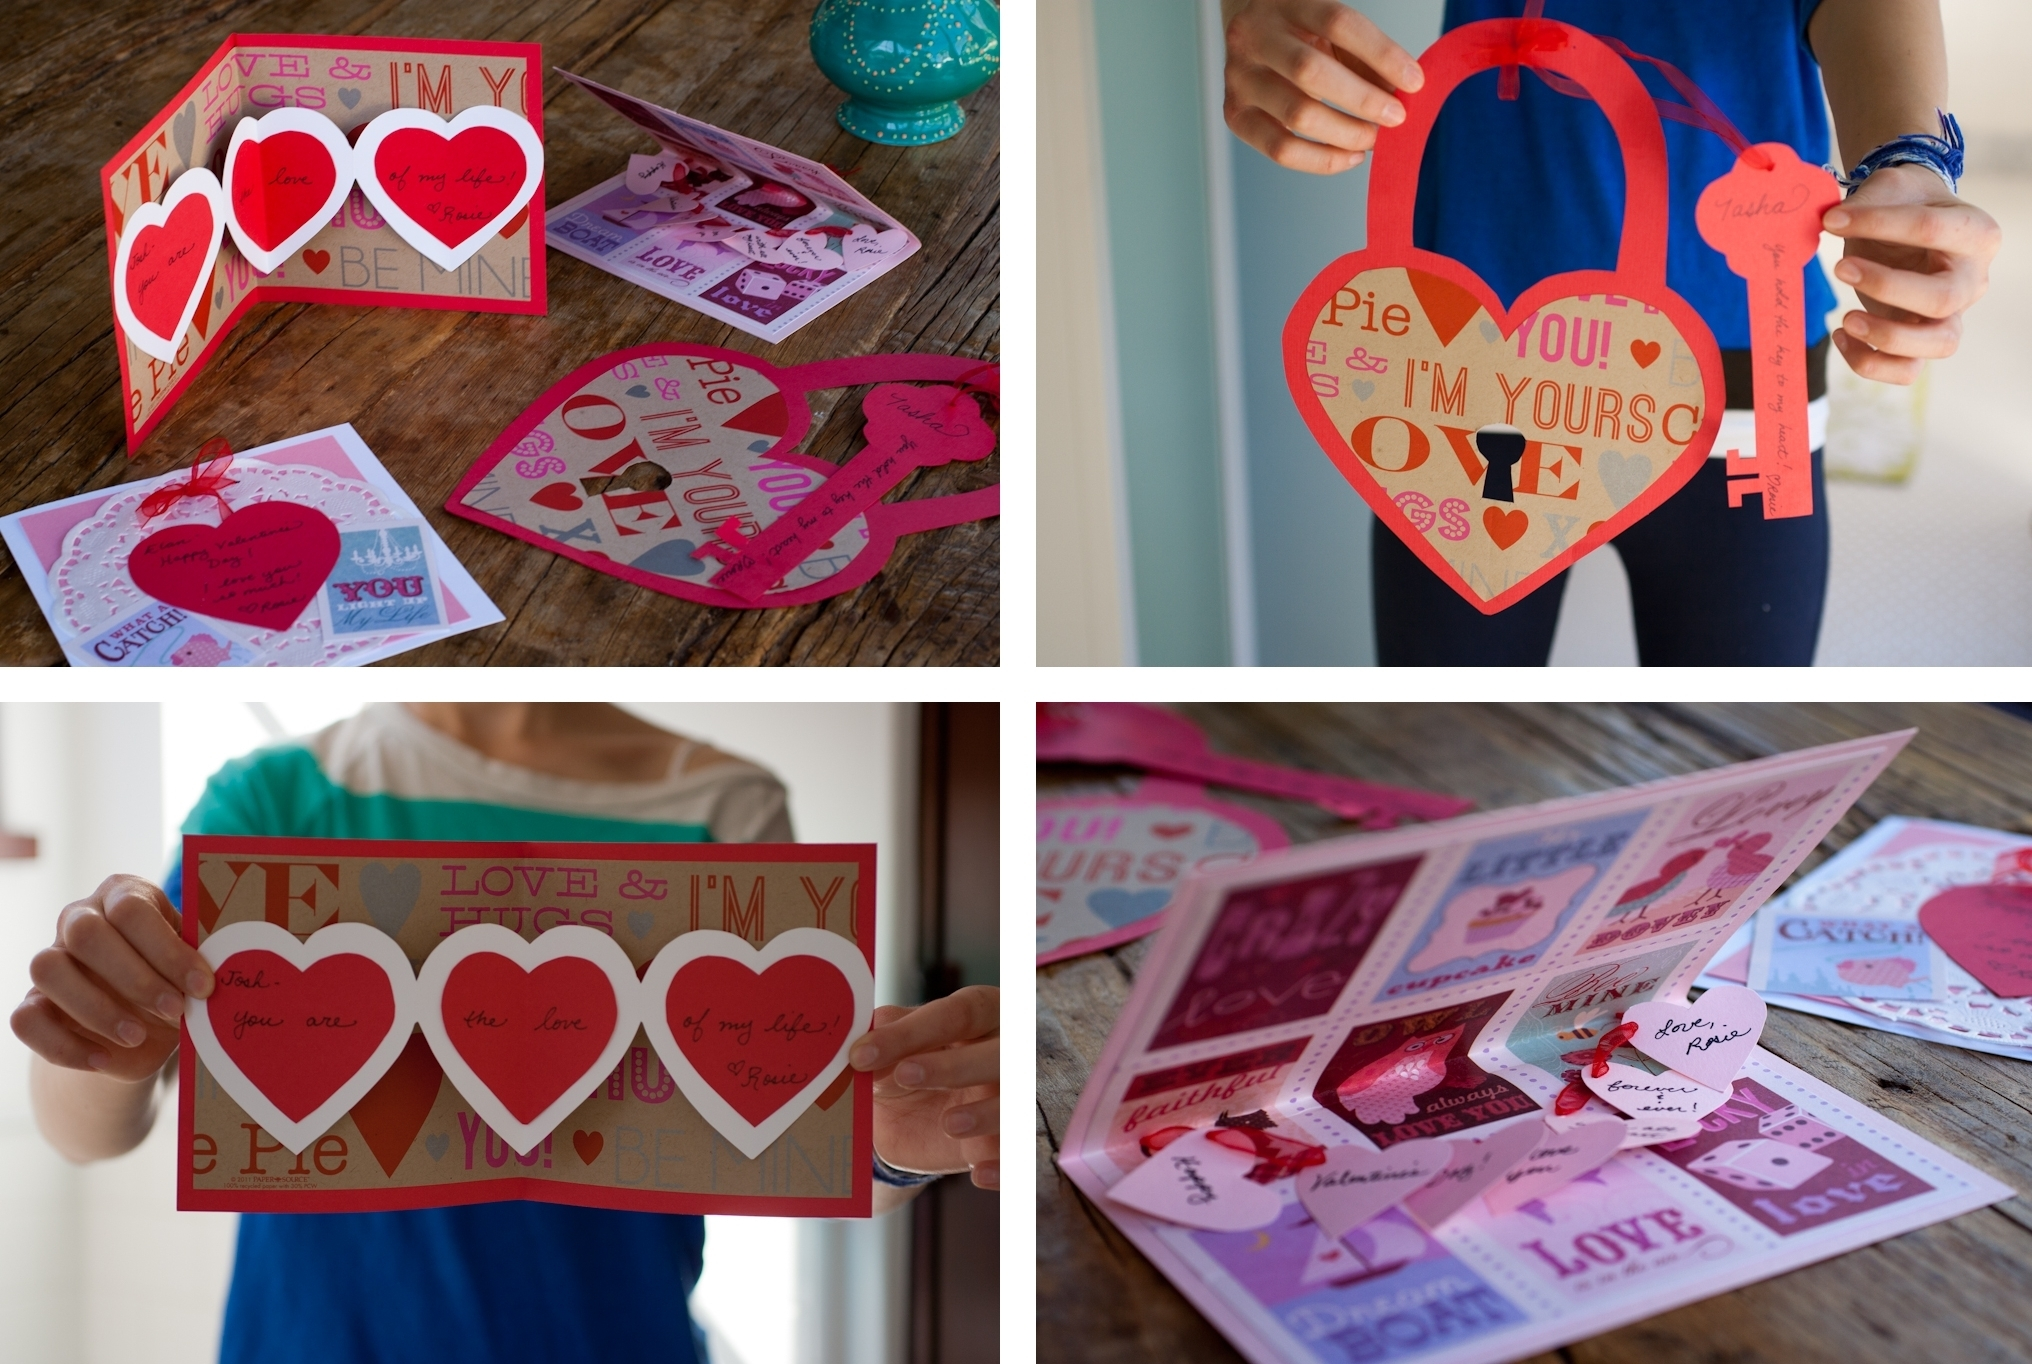 How To Make Handmade Cards For Boyfriend Step By Step regarding How To Make Handmade Cards For Boyfriend Step By Step 30188